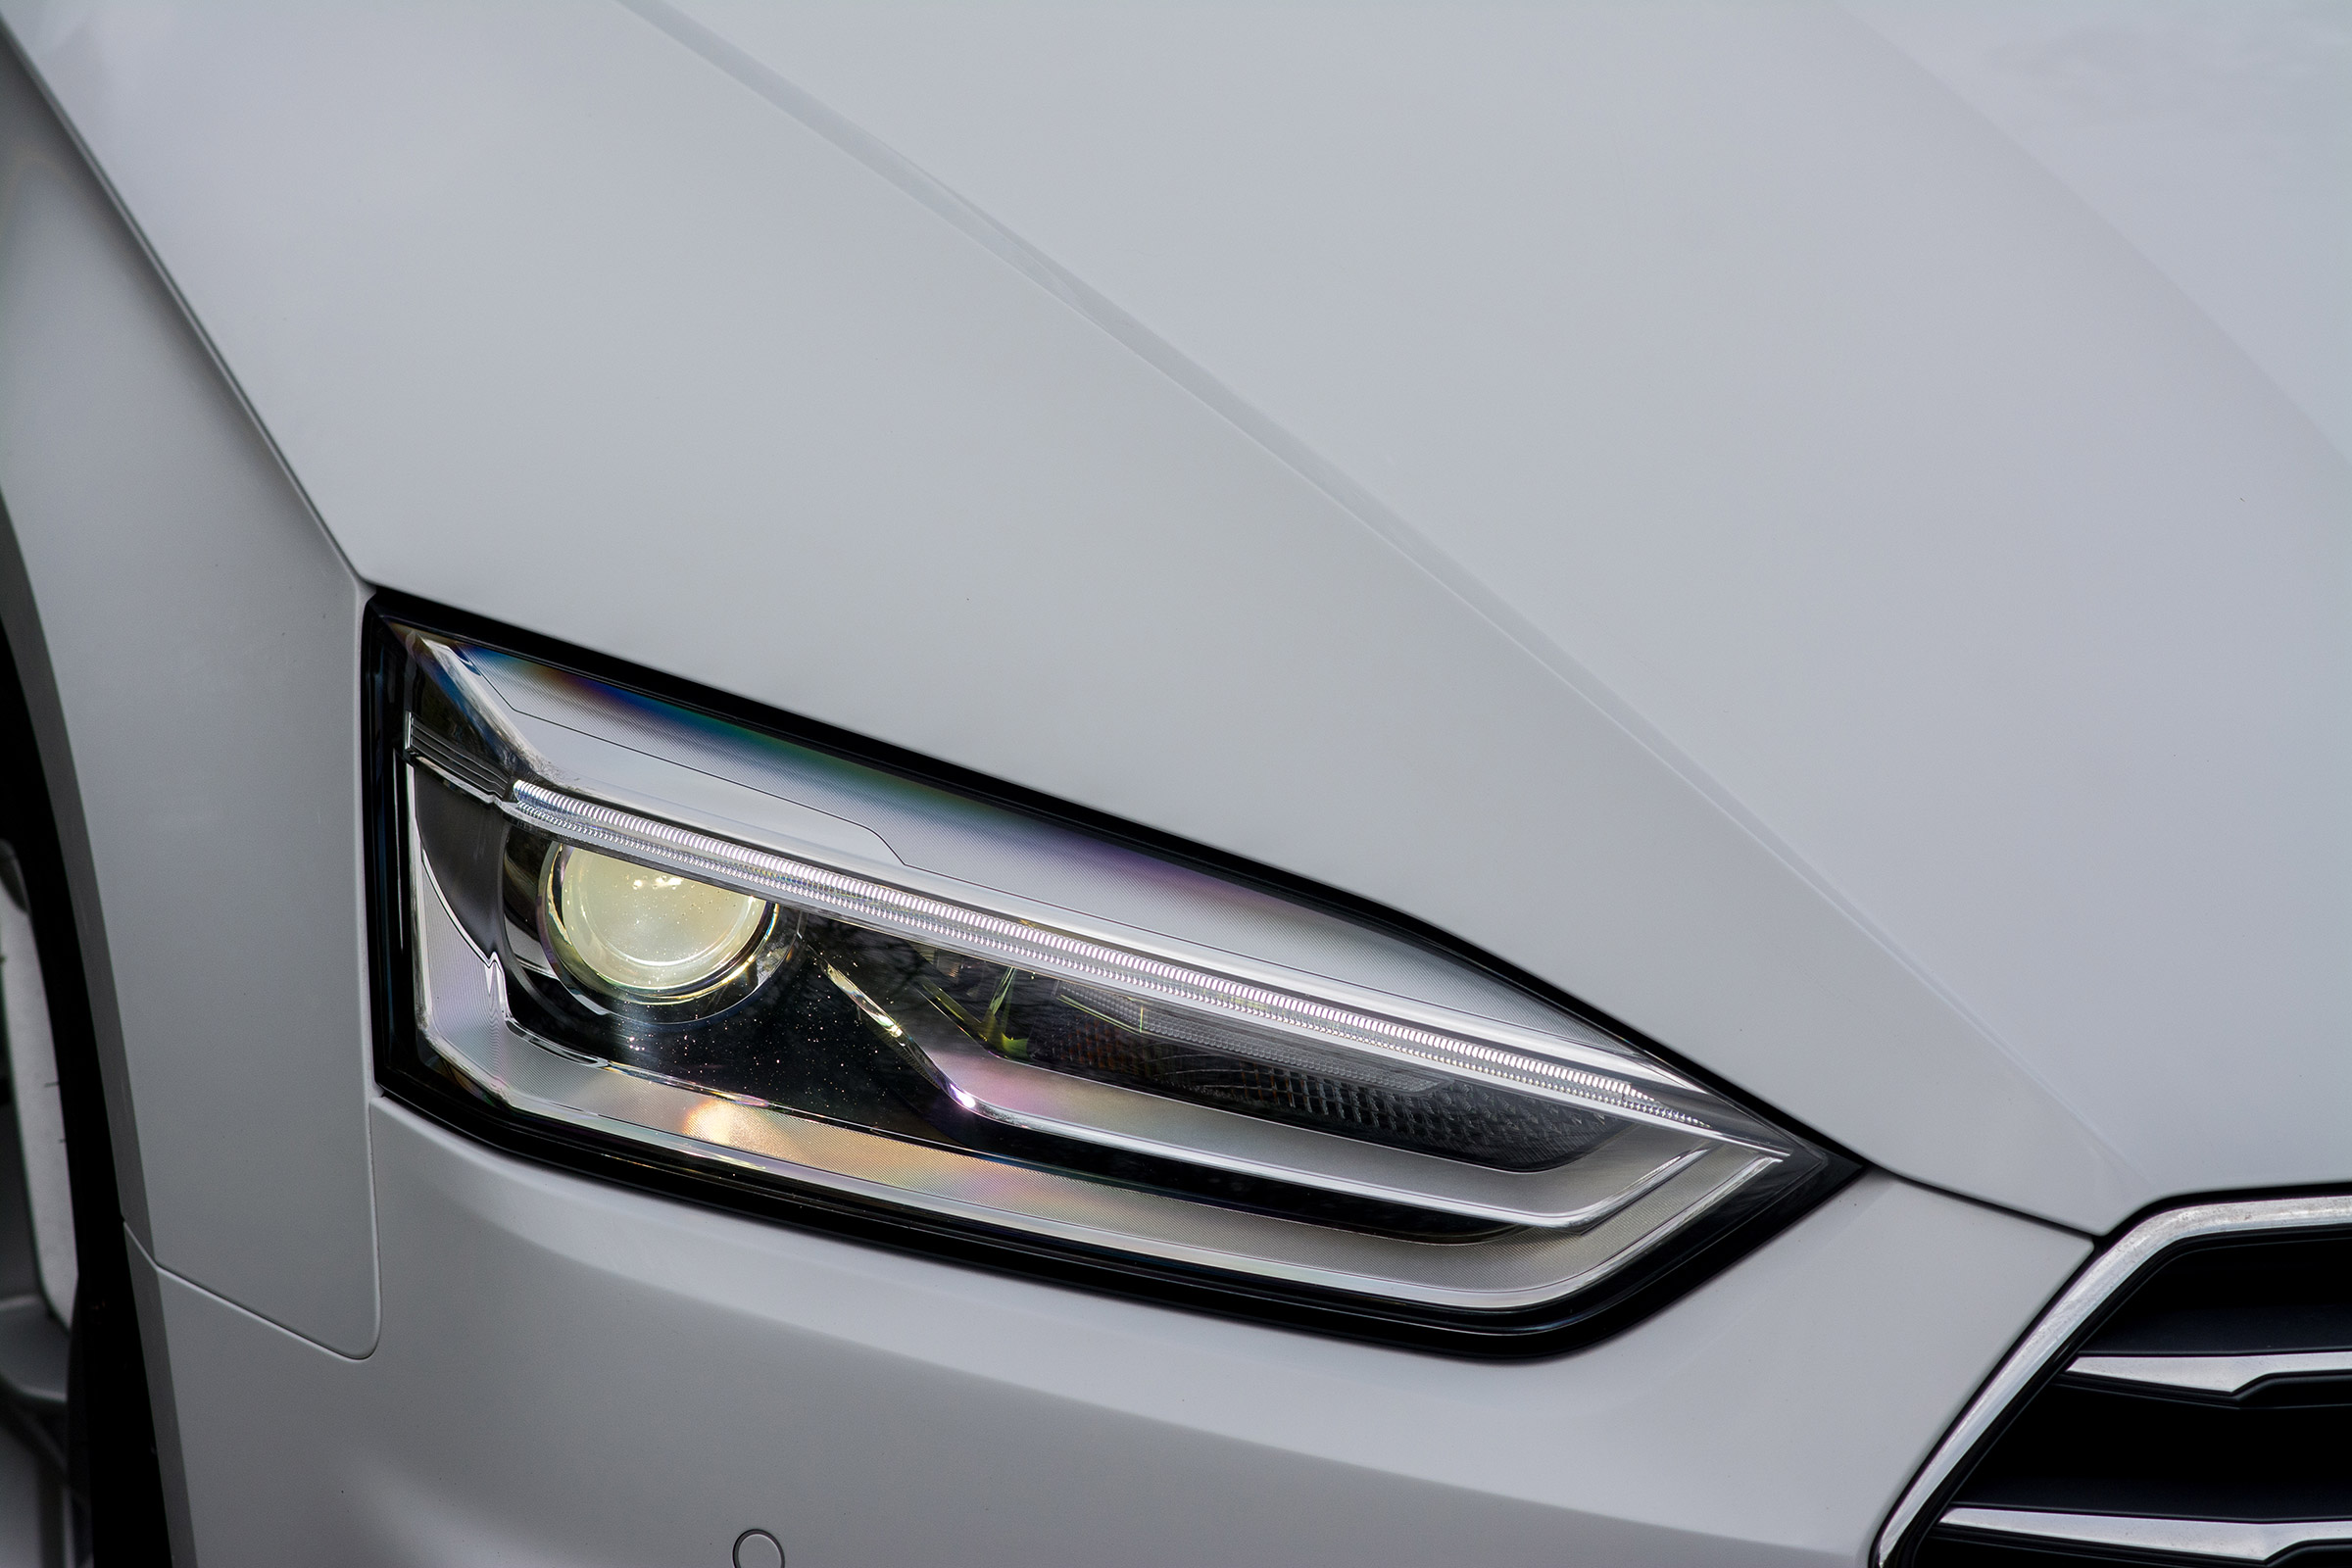 2017 Audi A5 Coupe Exterior View Headlight (Photo 2 of 21)